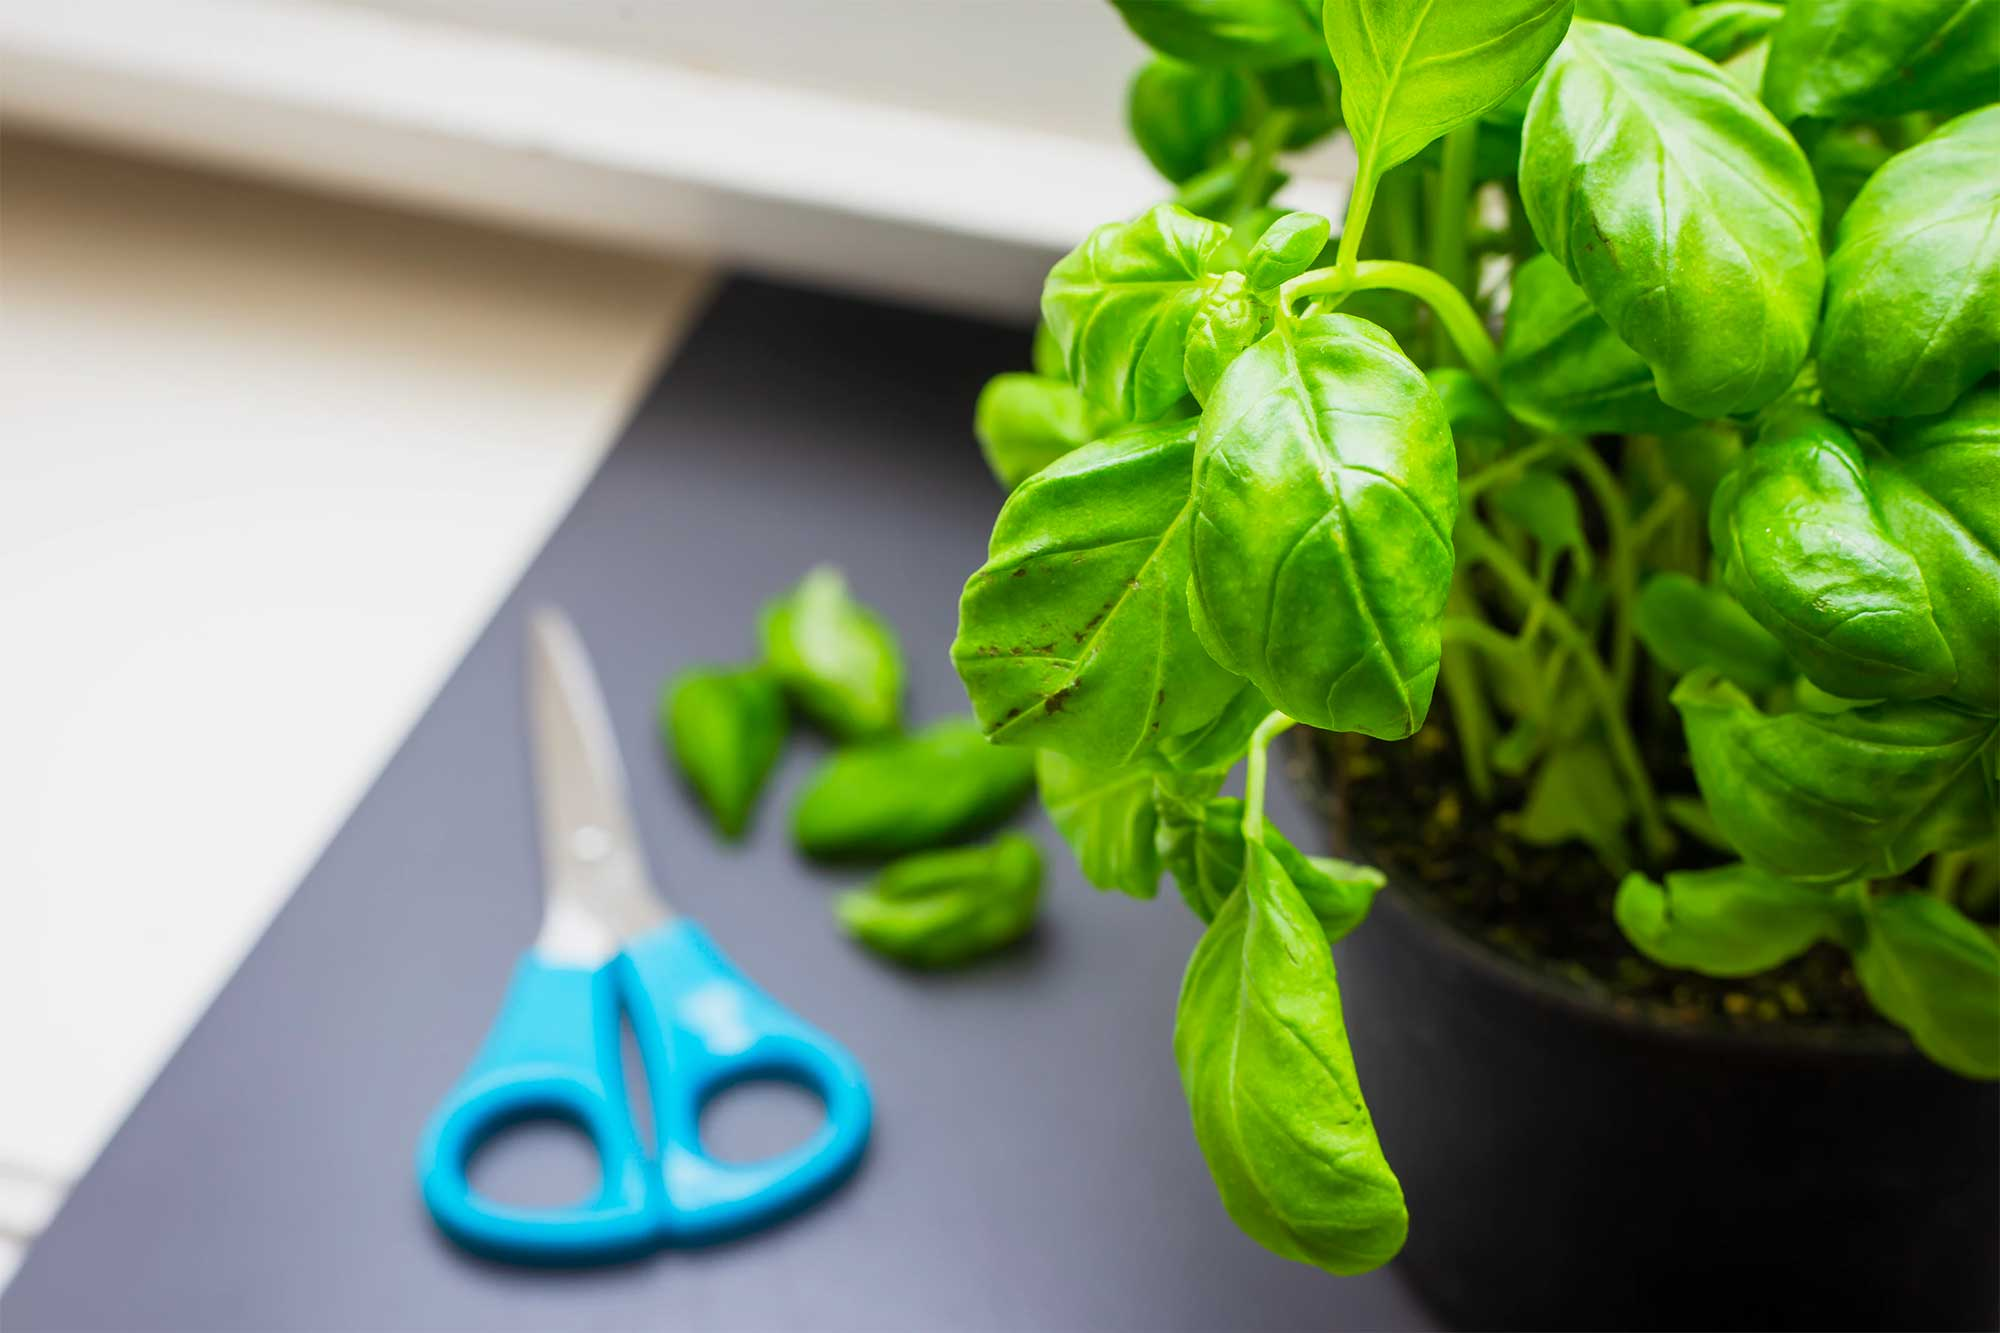 Basil plant with kitchen shears in the background